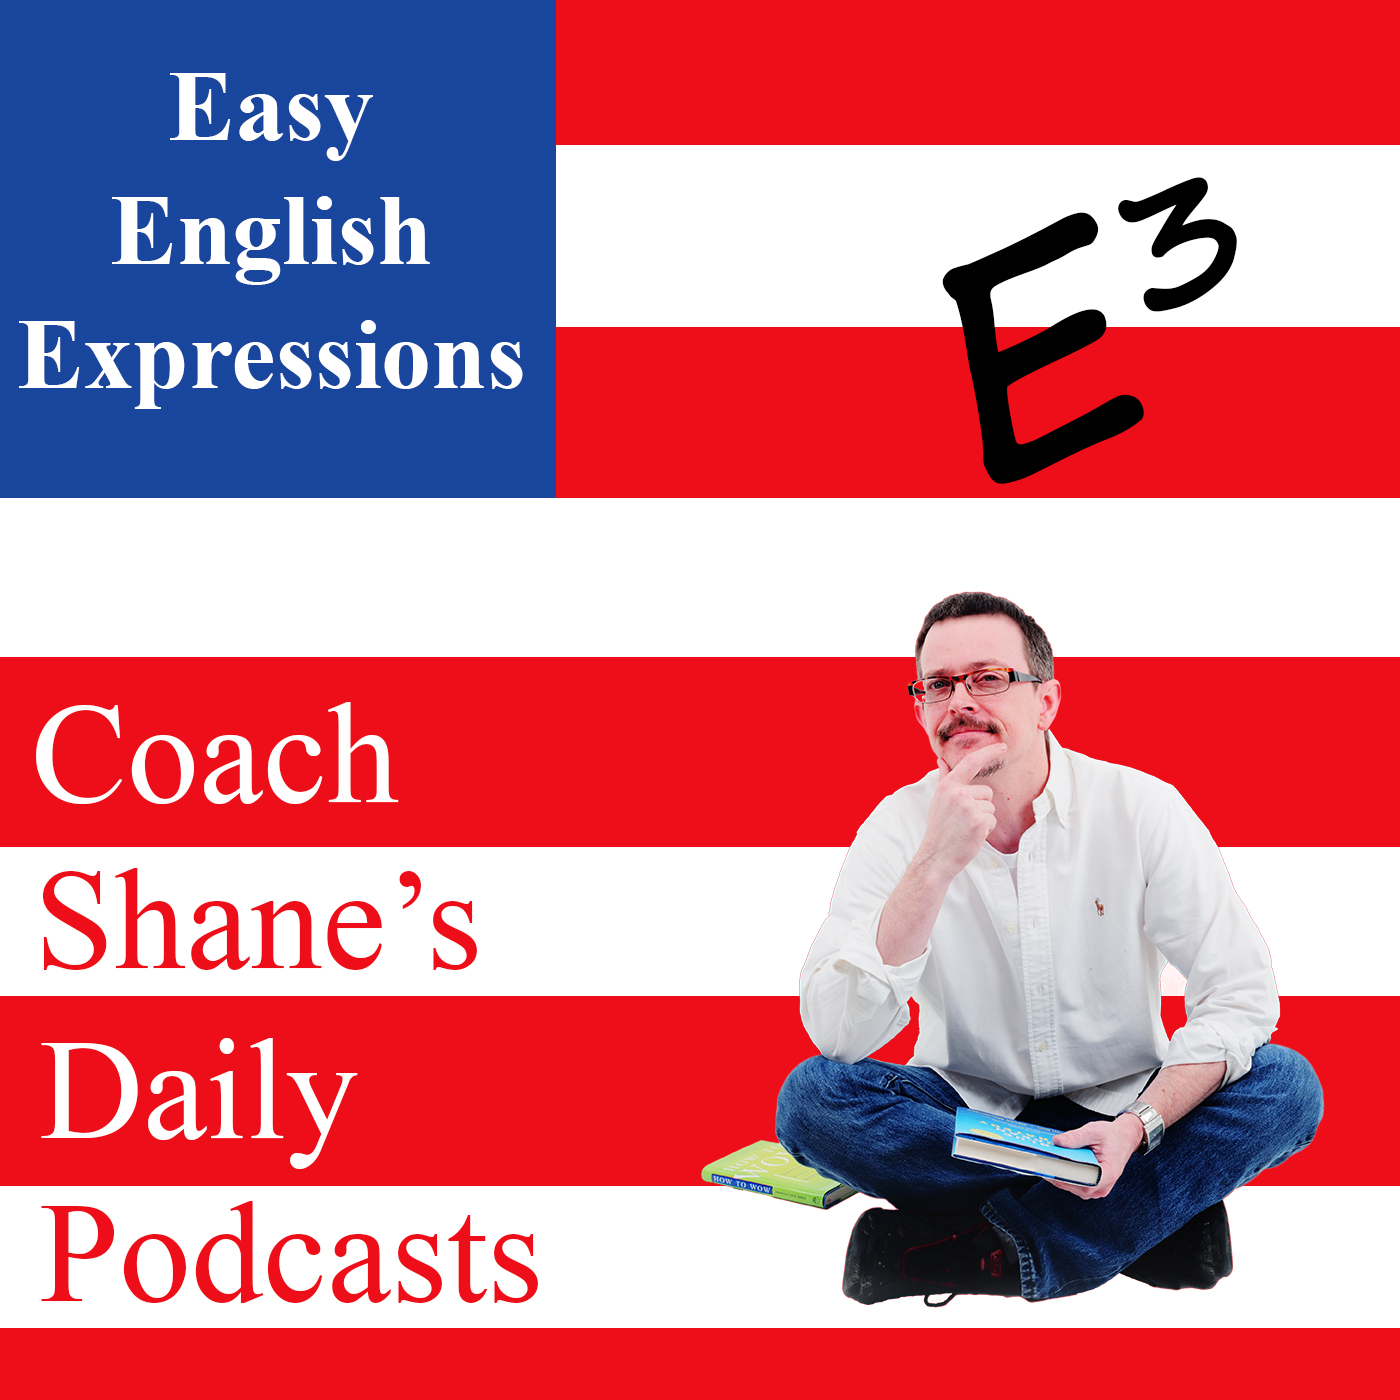 48 Daily Easy English Expression PODCAST—I'm down!